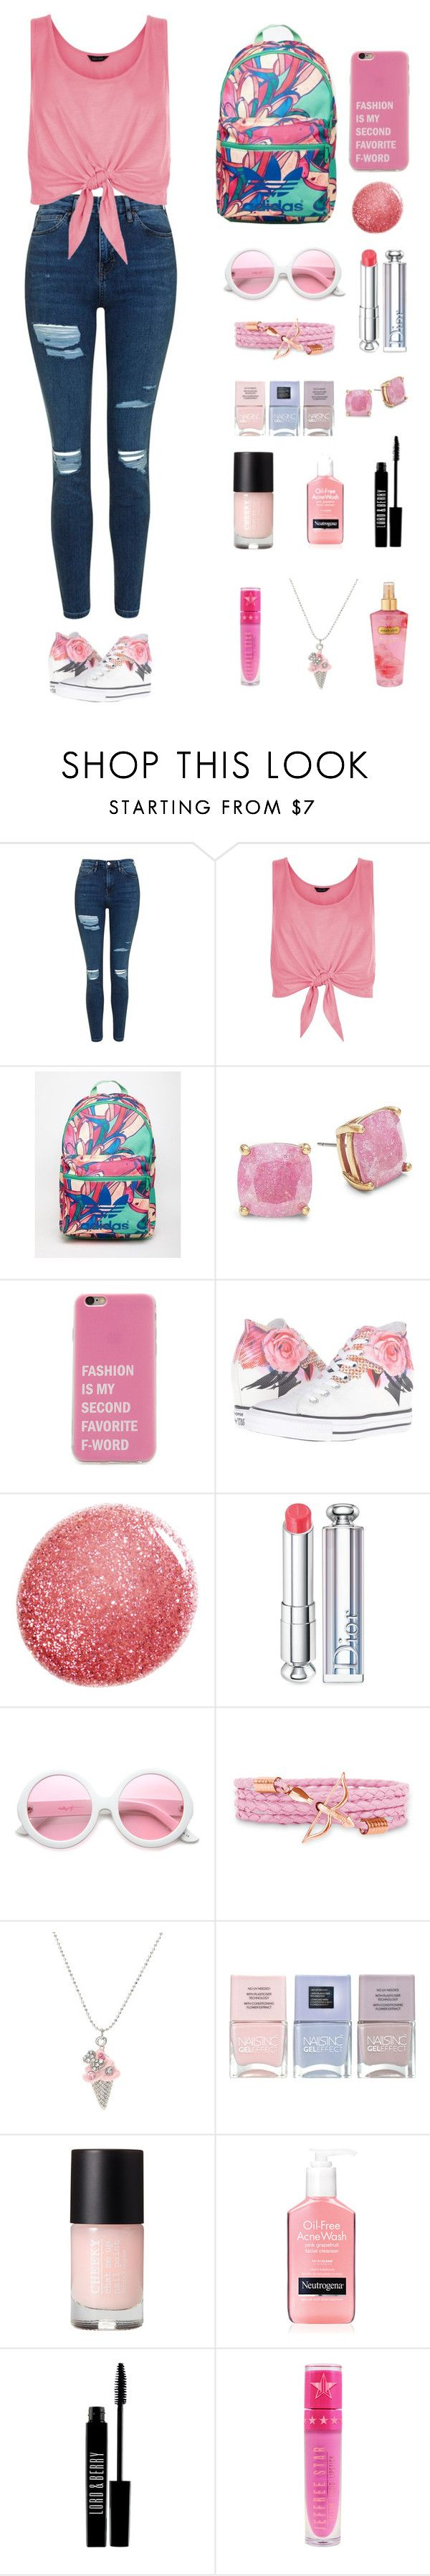 """Untitled #273"" by keyling99 ❤ liked on Polyvore featuring Topshop, New Look, adidas, Kate Spade, Converse, NARS Cosmetics, Christian Dior, ZeroUV, Nails Inc. and Lord & Berry"